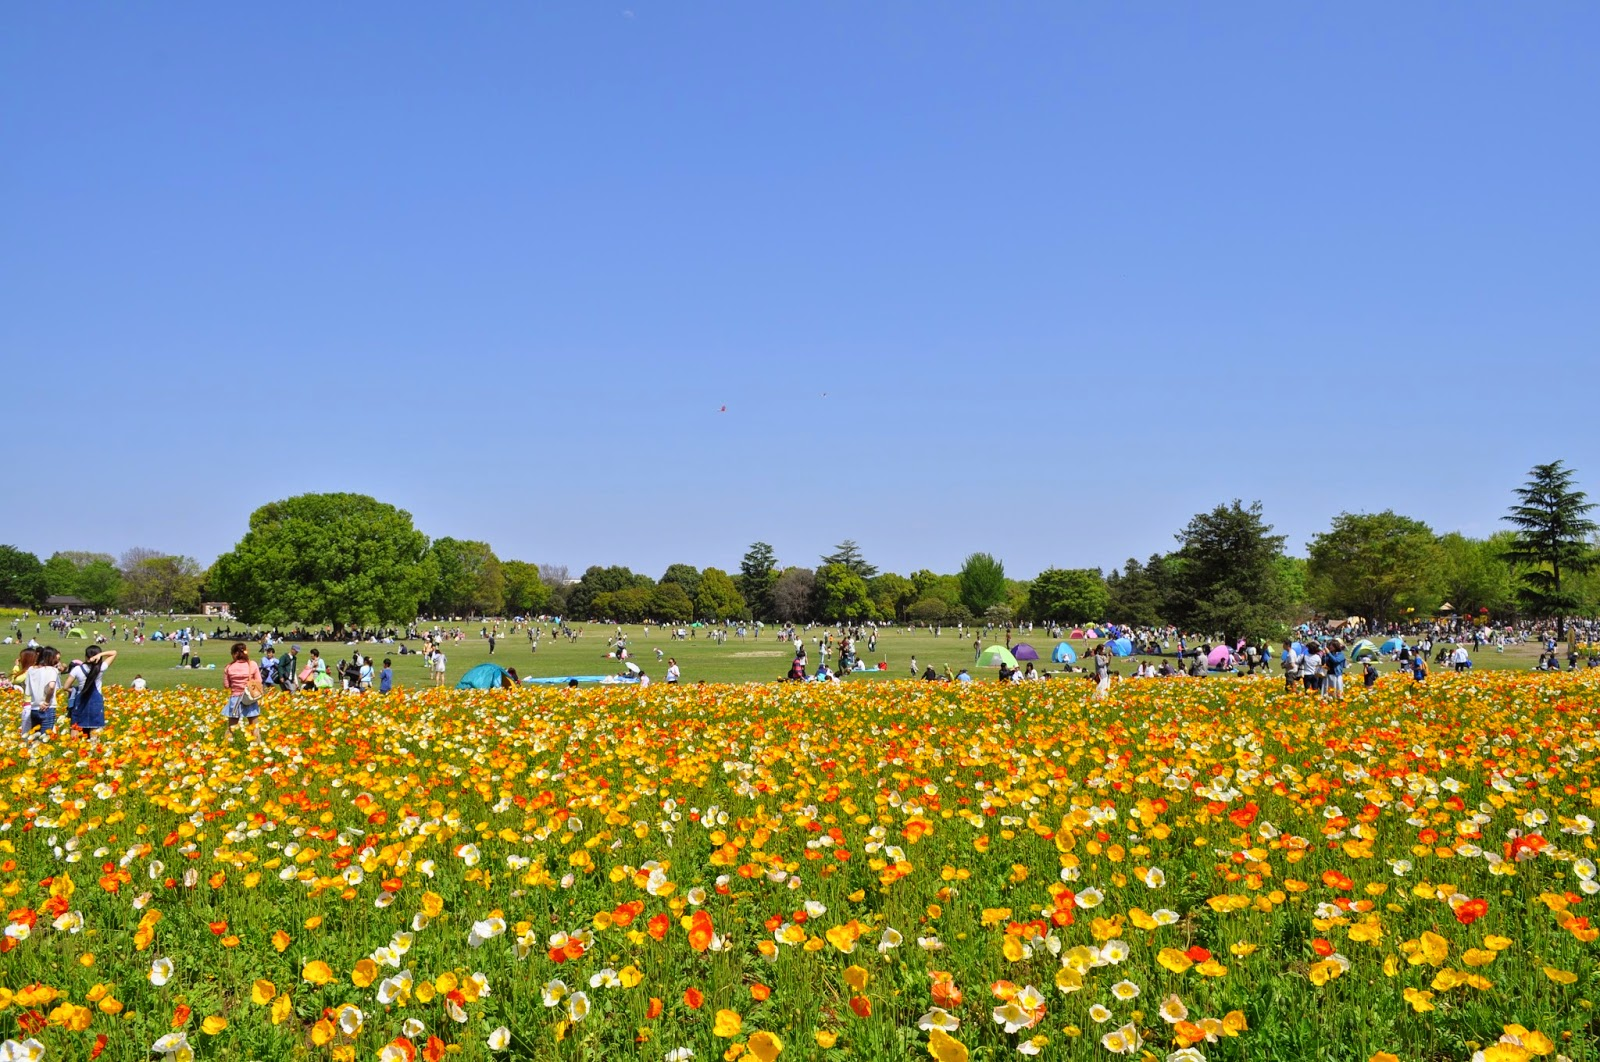 The Park Brings Us City Dwellers To A Place Literally Filled With Nature Where Everything Looks So Beautiful And Vibrant Its Wonderful